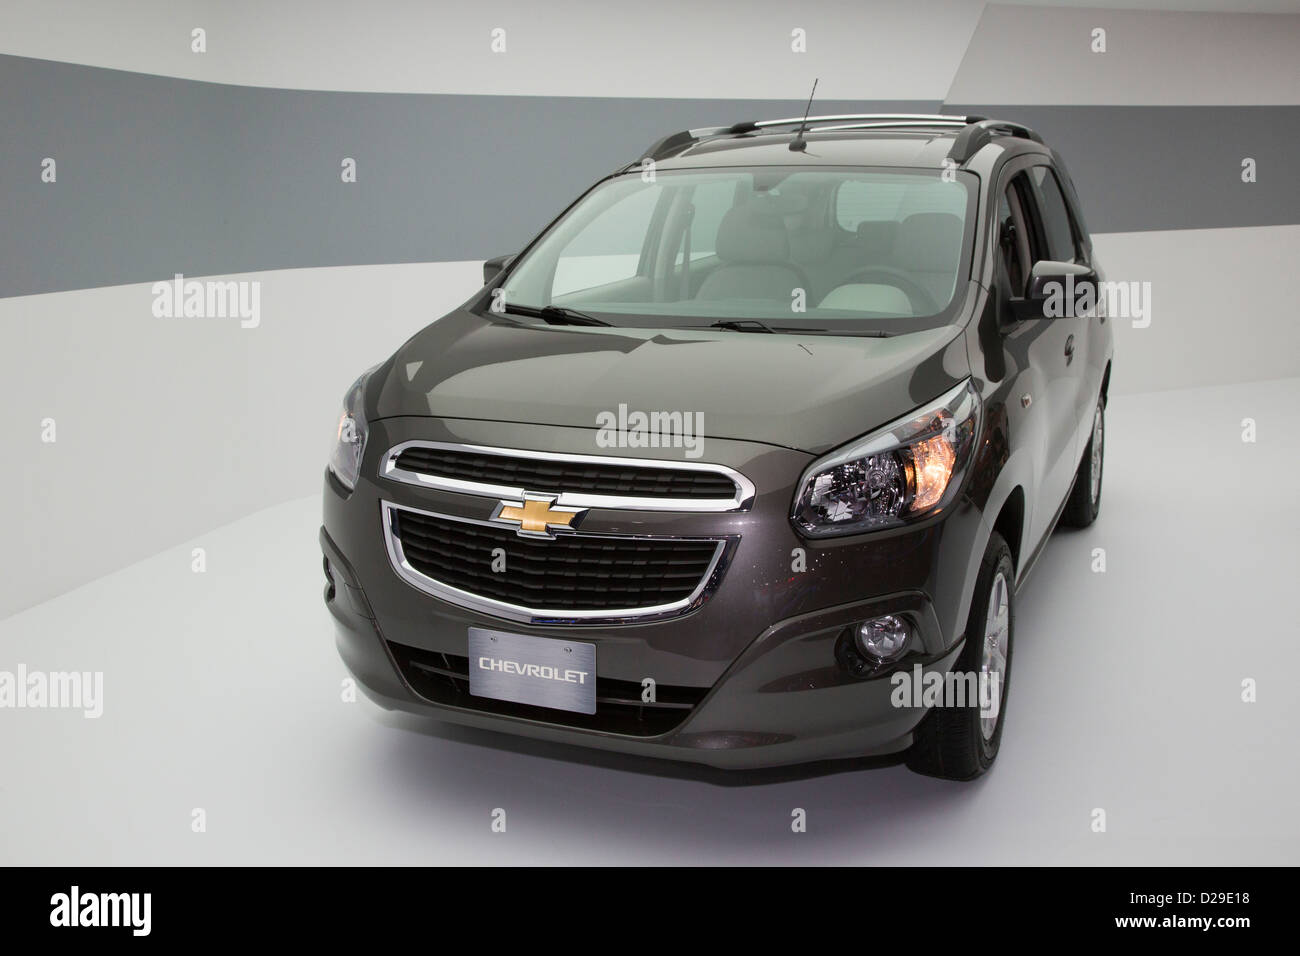 The Chevrolet Spin on display at the North American International Auto Show - Stock Image